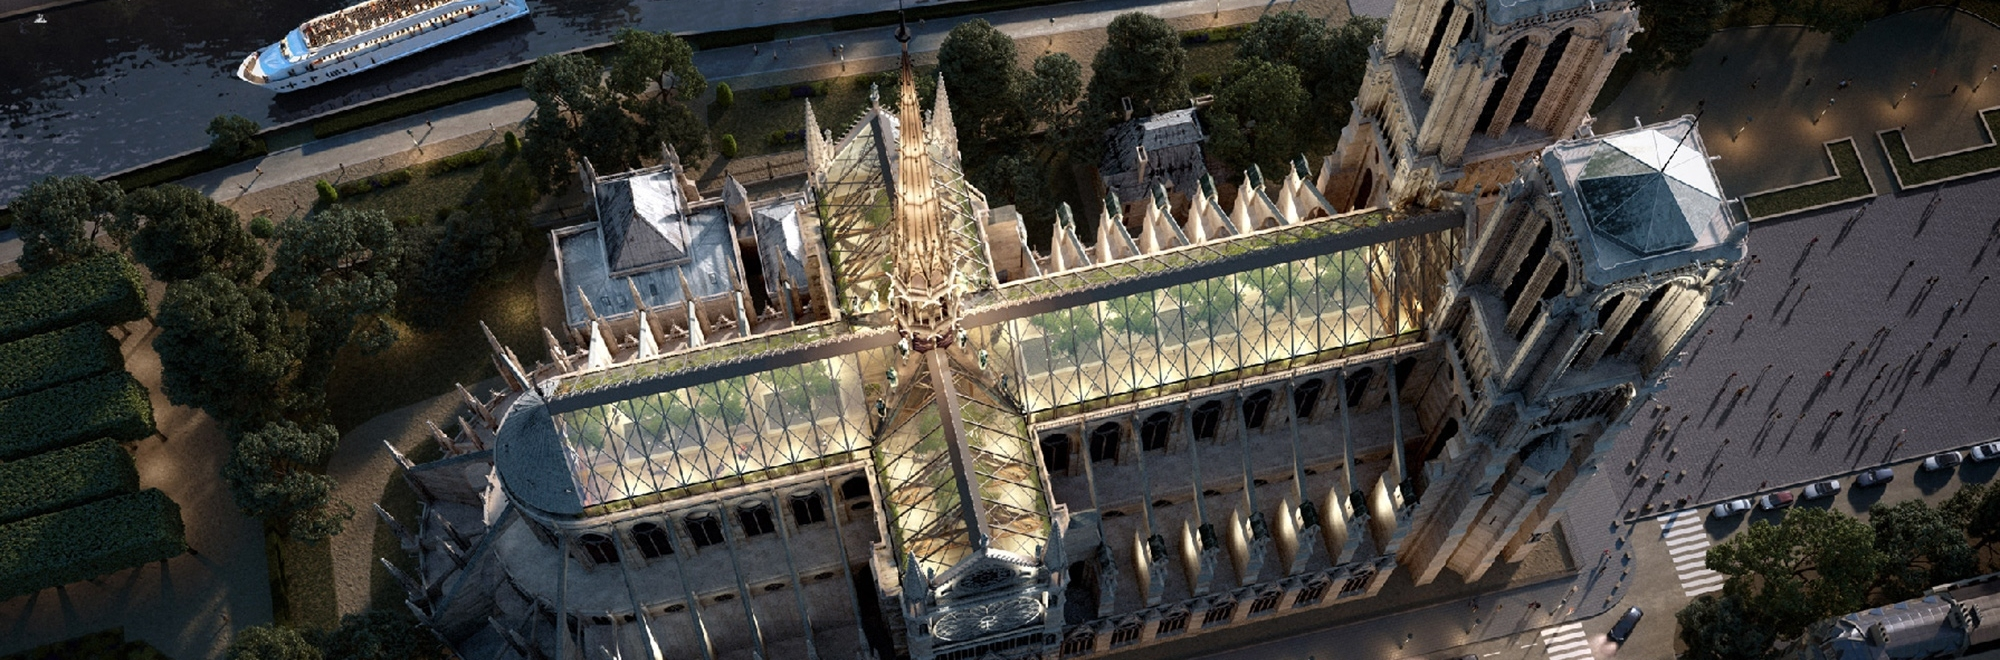 A look at the plans architects have for Notre-Dame to rise from its ashes